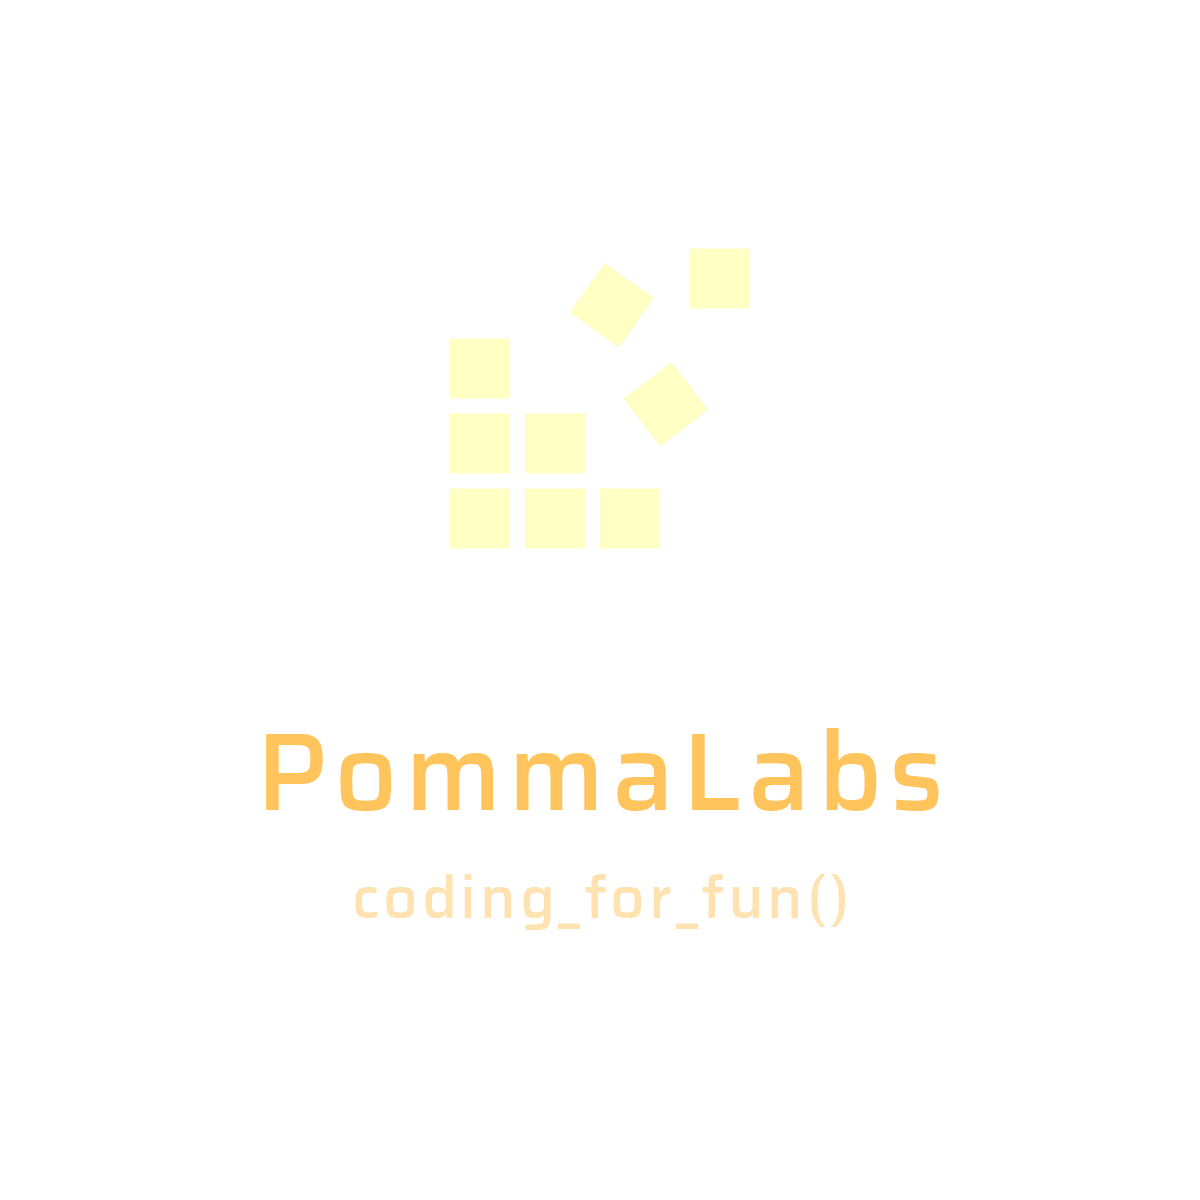 static/images/pommalabs-logo.transparent.png